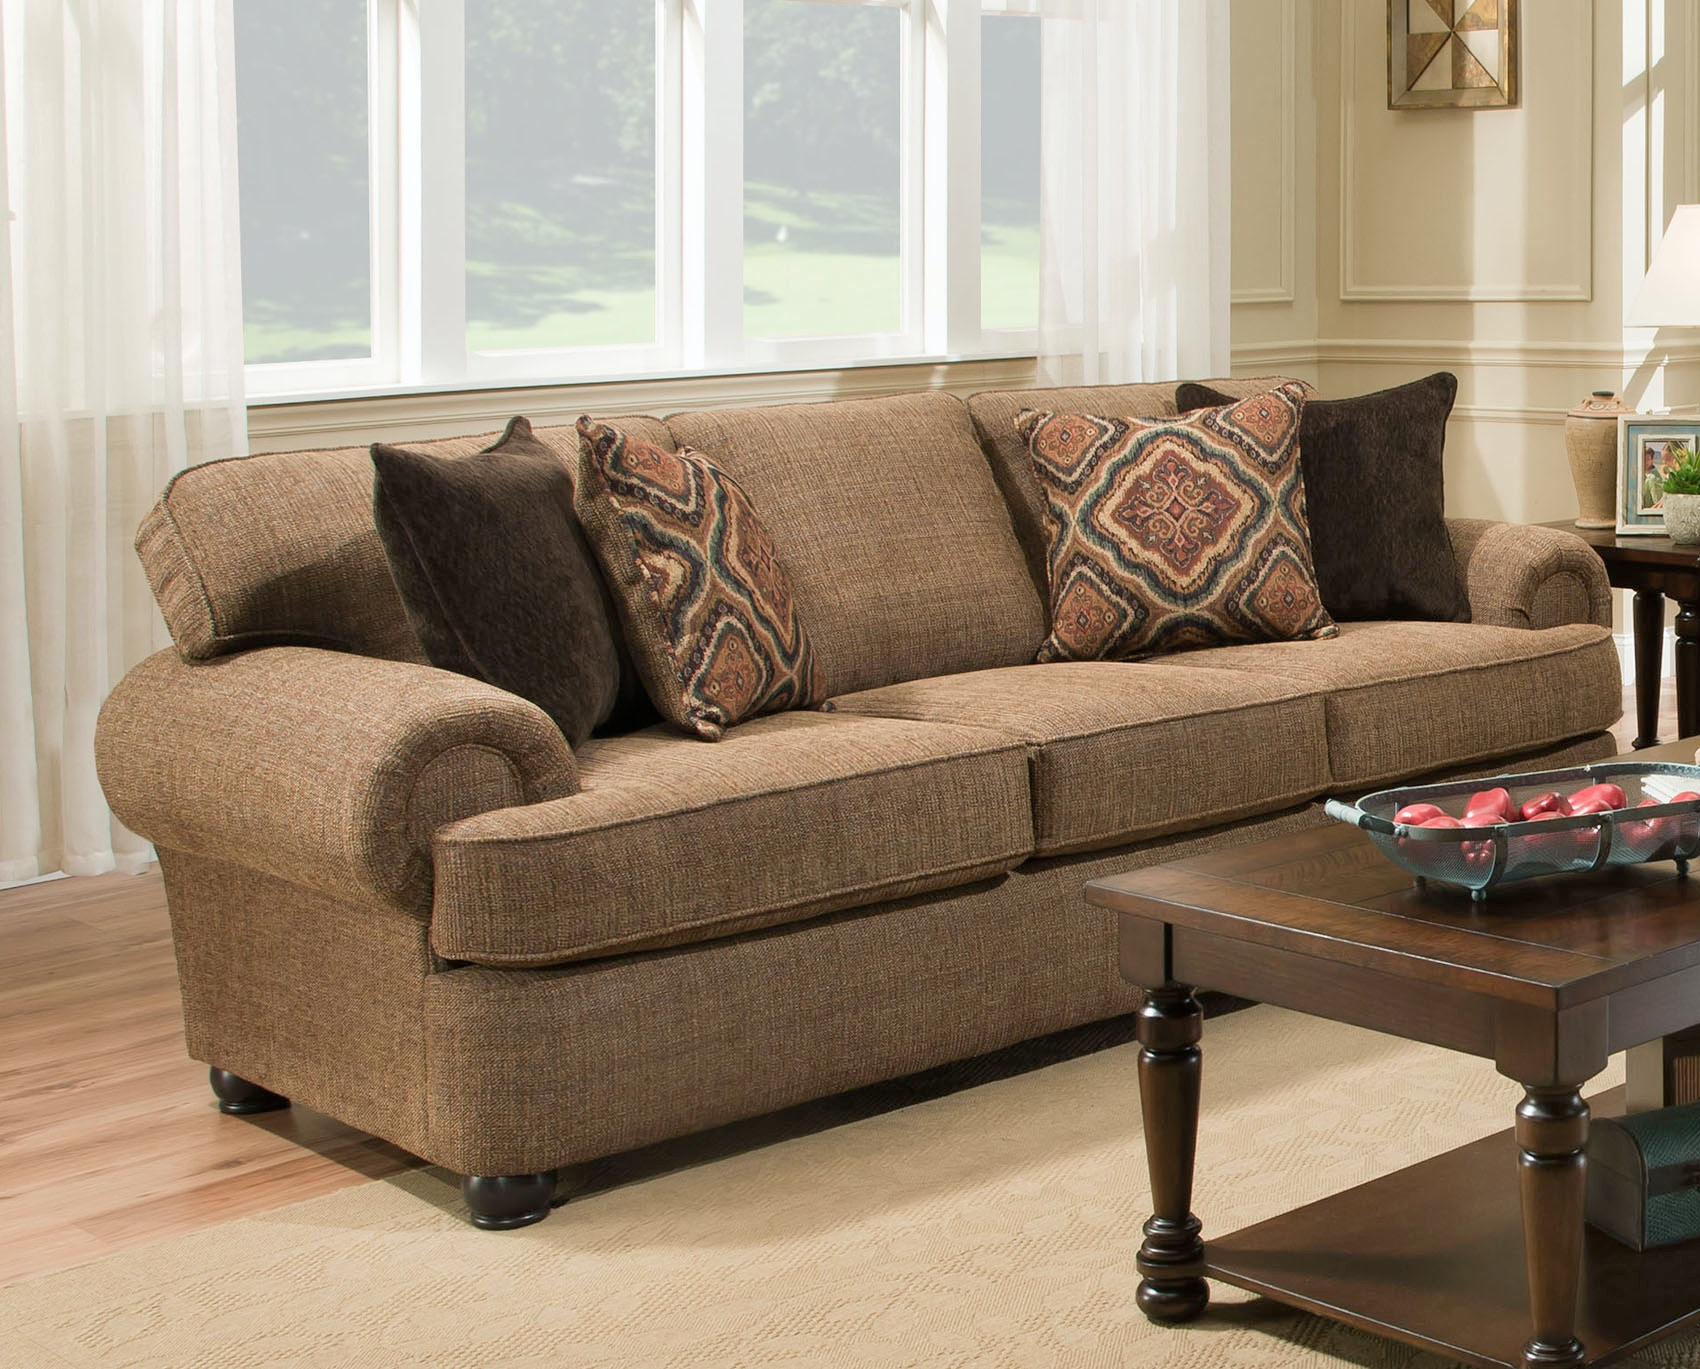 Simmons Upholstery Shelby Sofa 053359